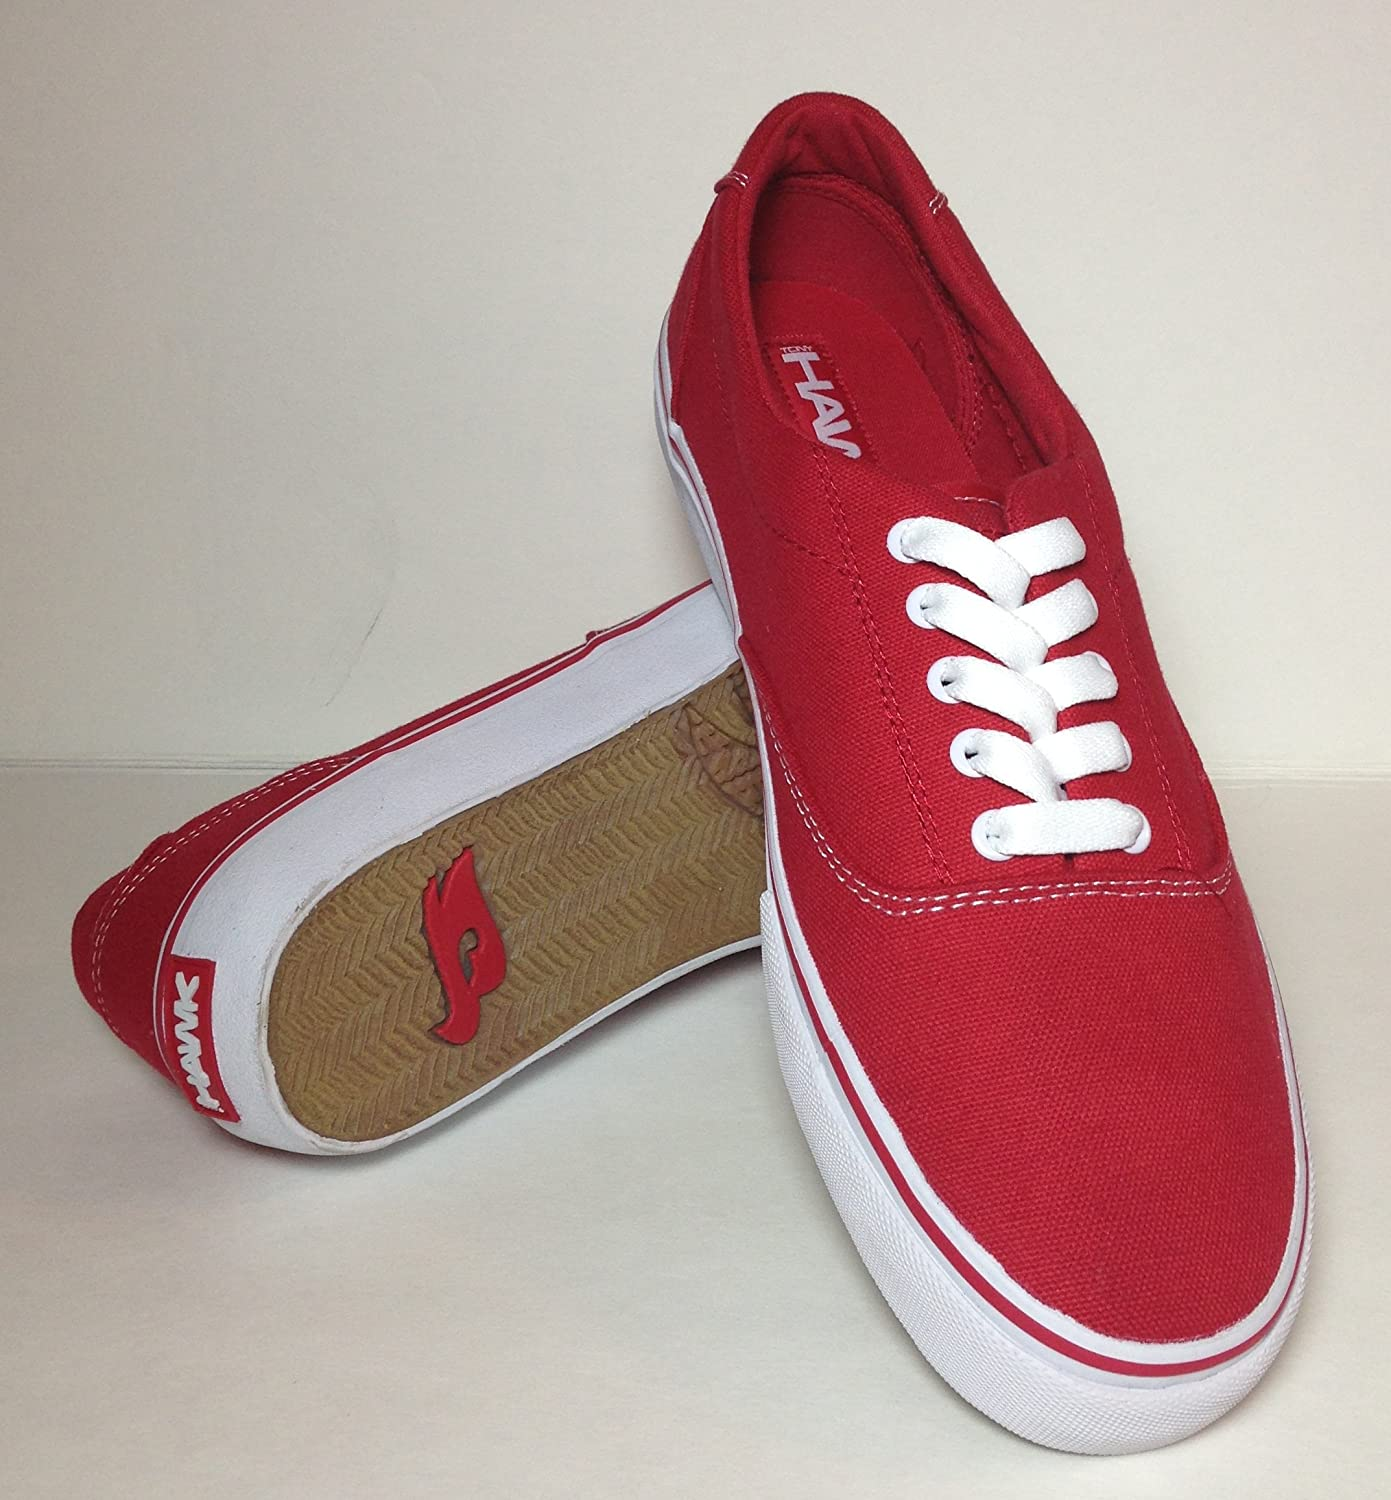 Tony Hawk Men's Thedgered Sneakers Canvas shoes, Red